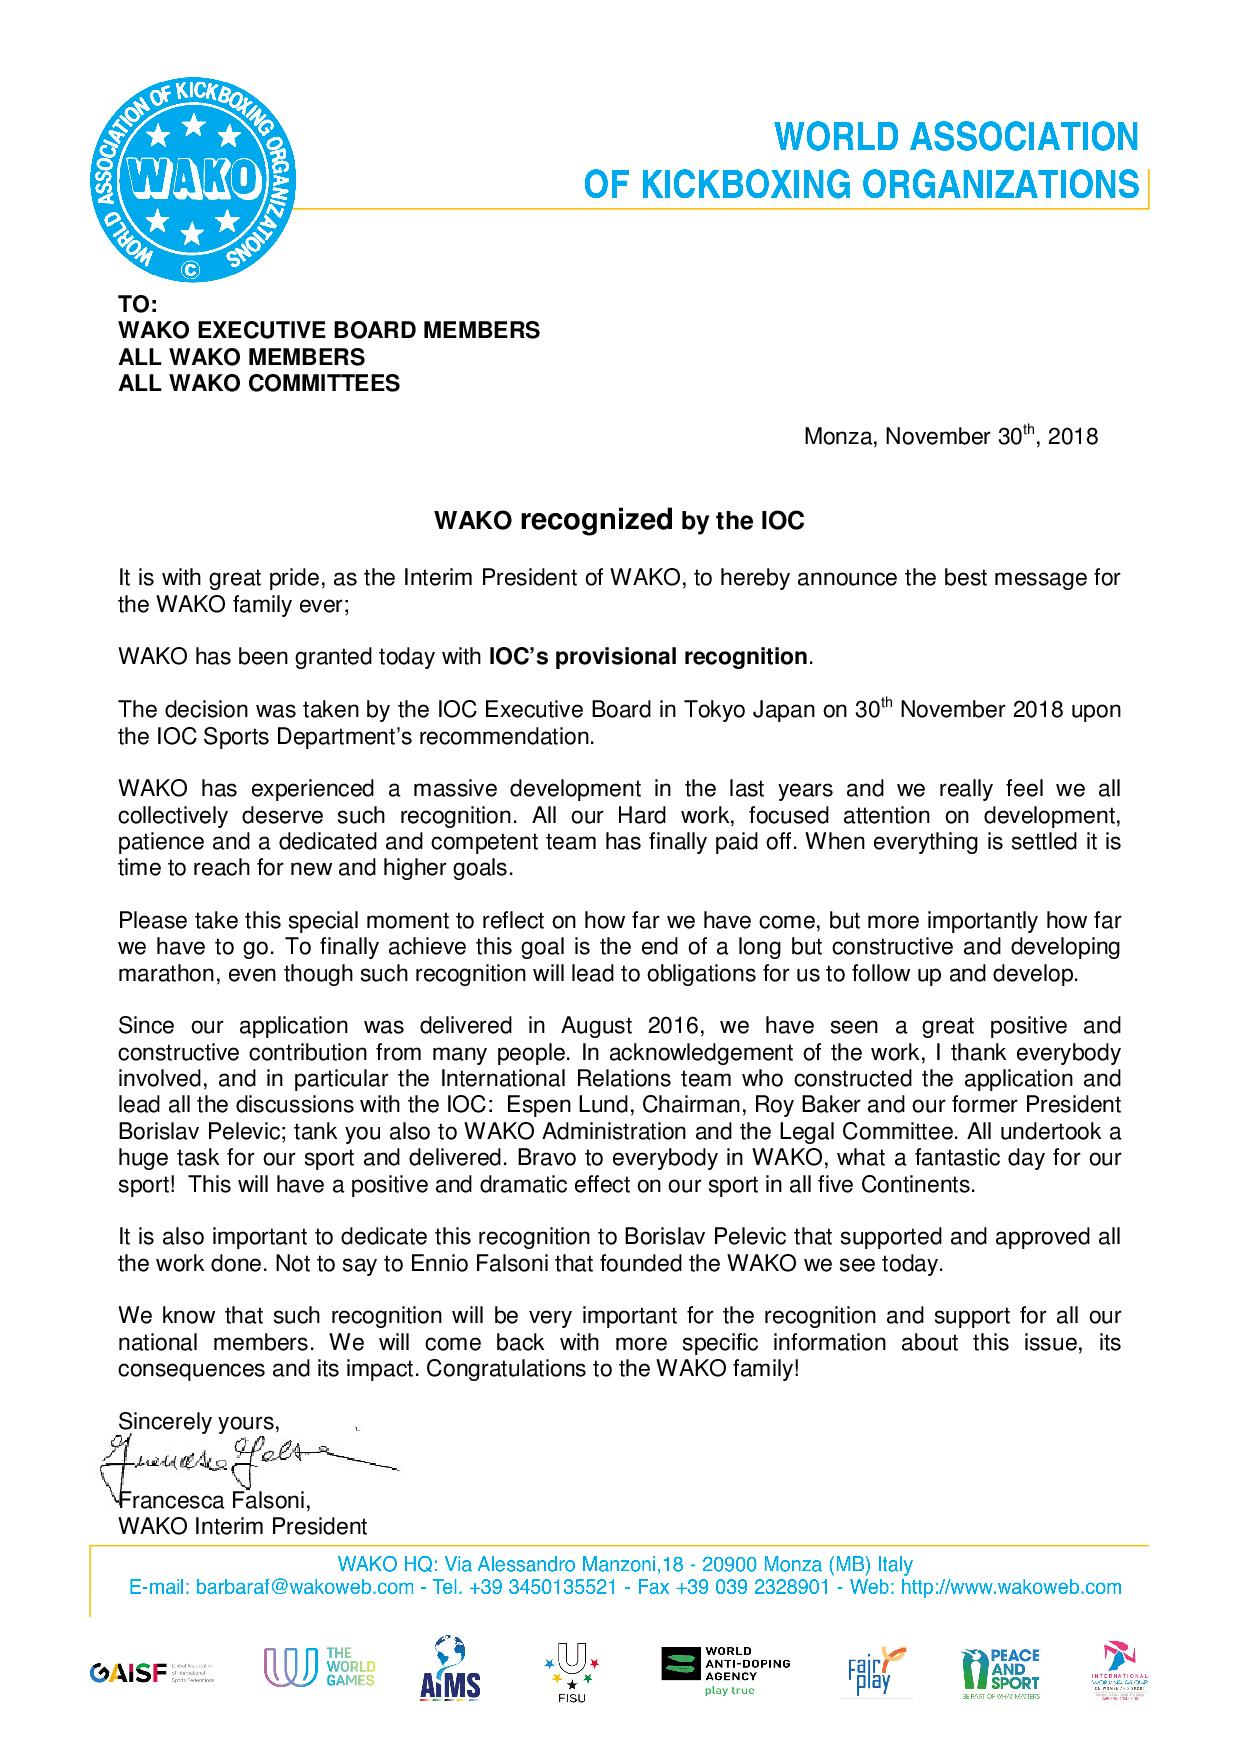 WAKO recognized by the IOC page 001